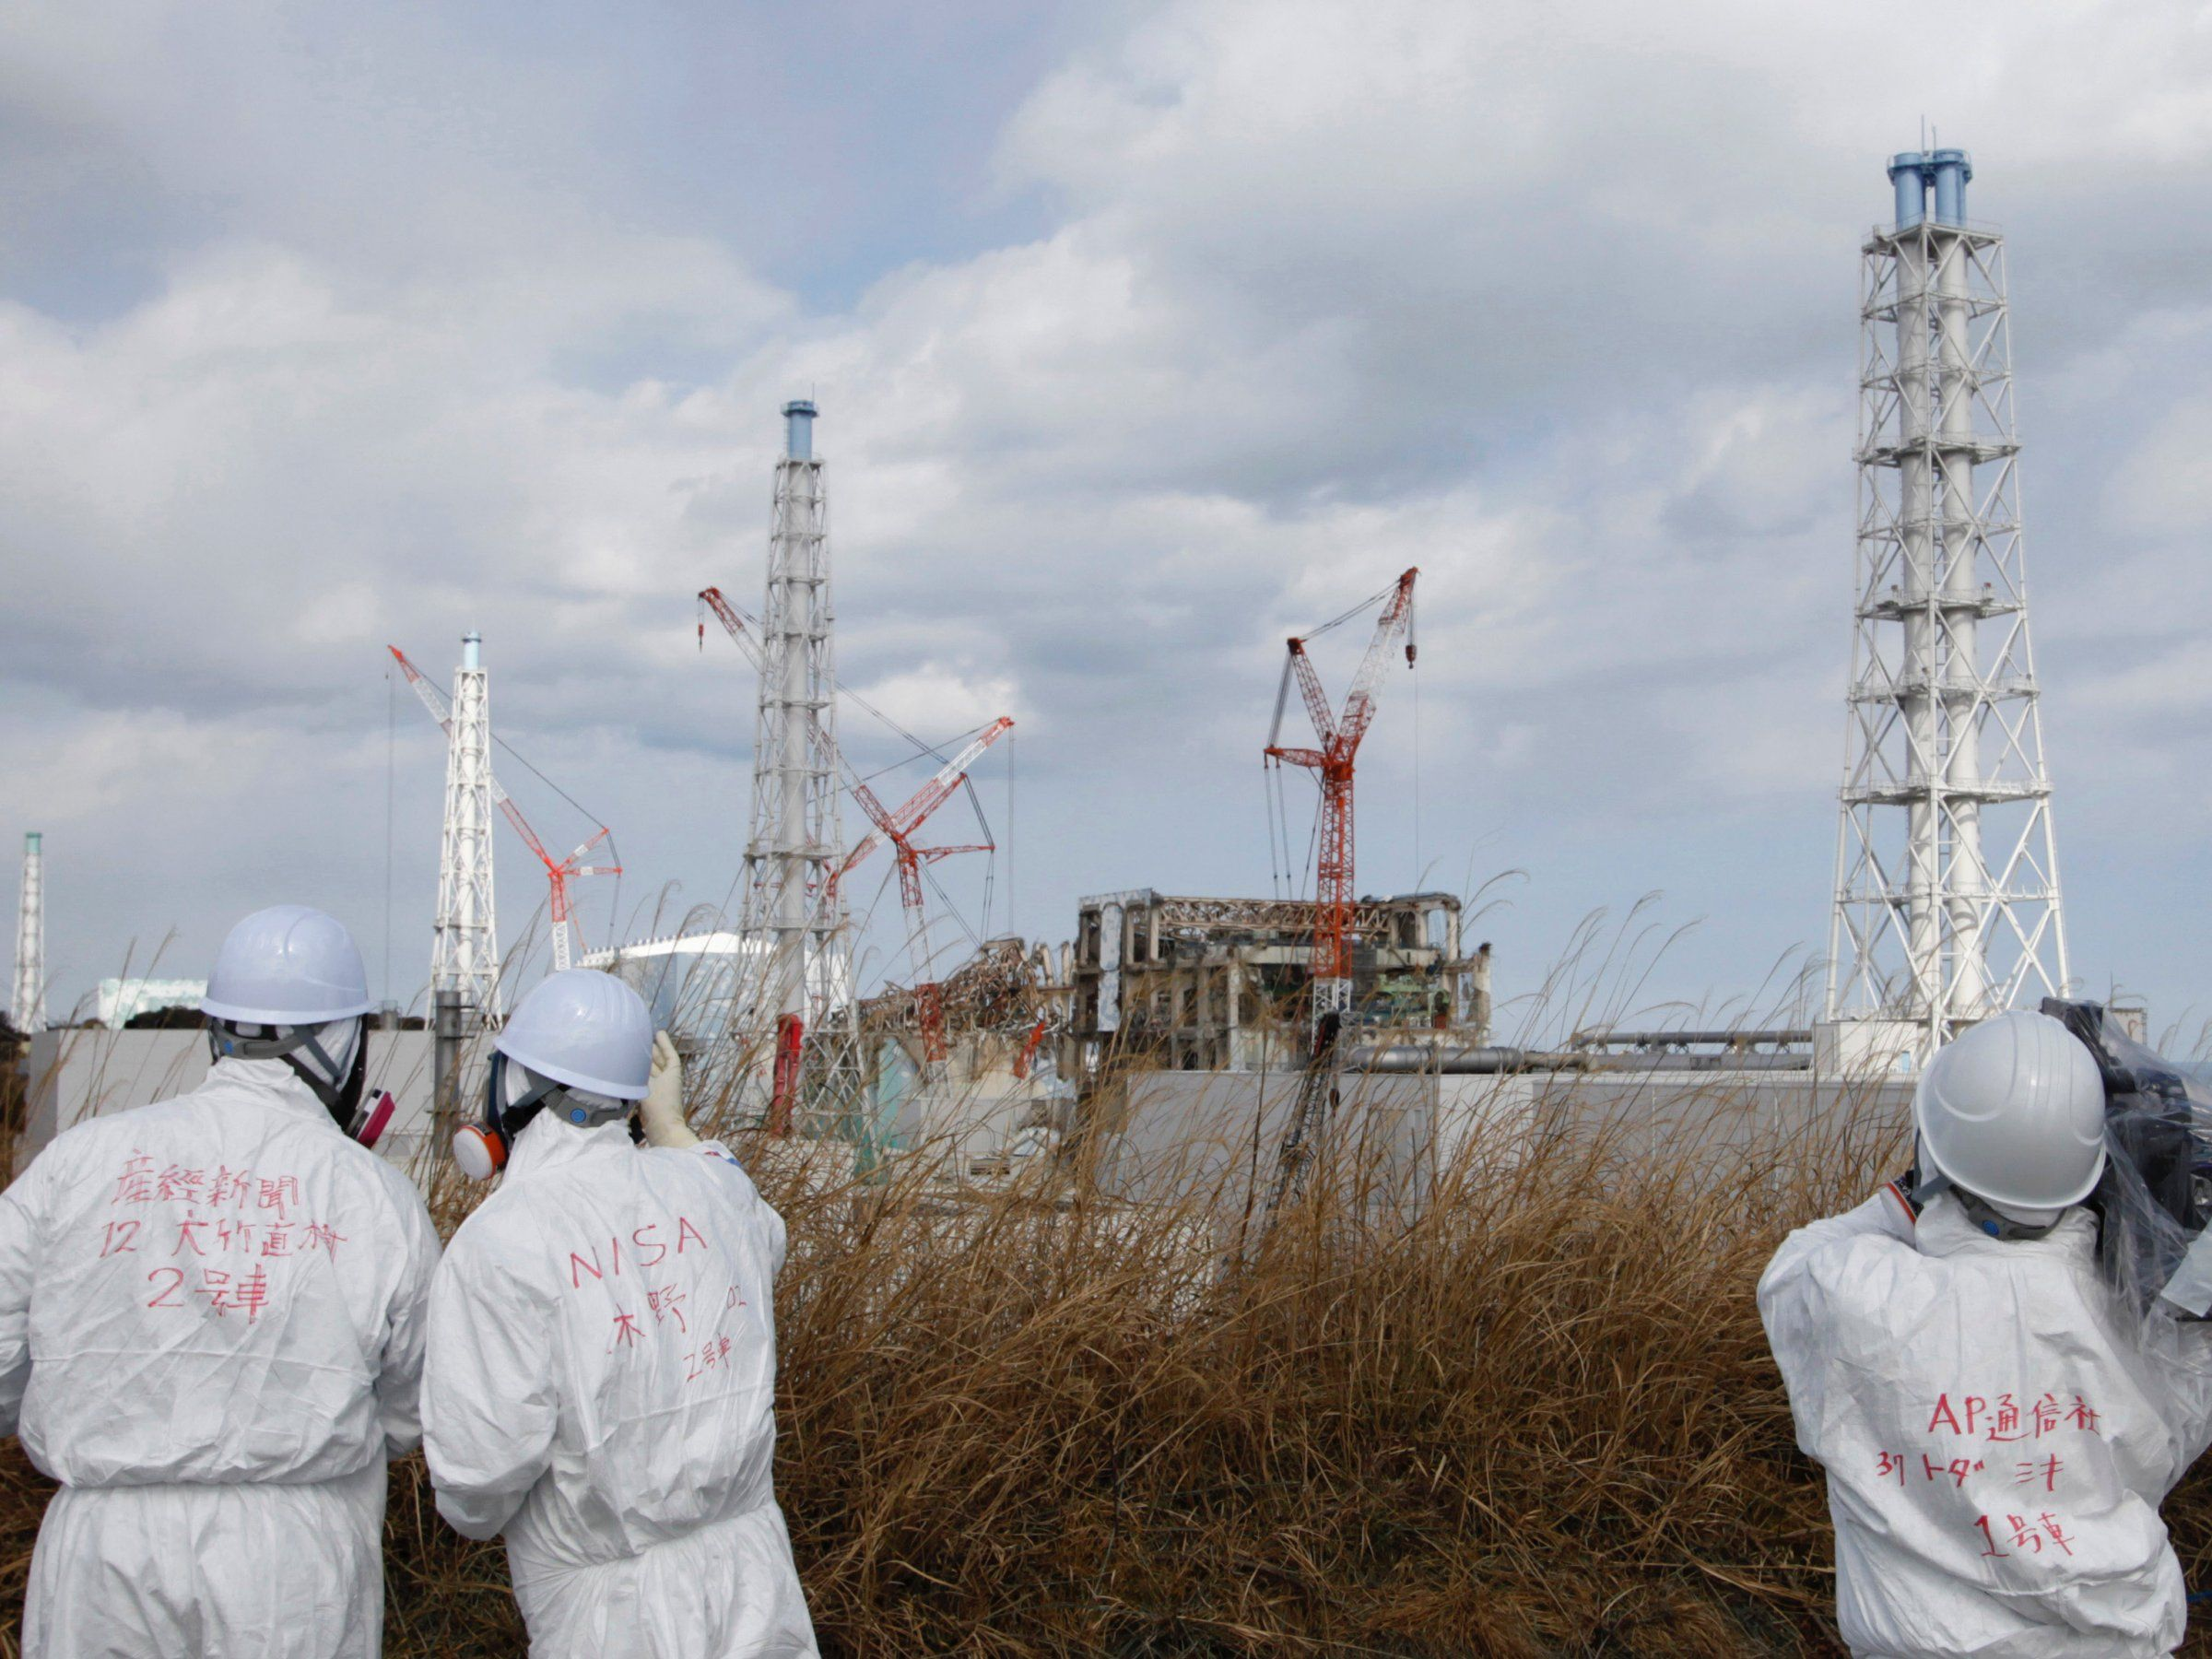 Six years after the Fukushima disaster many in Japan have lost faith in nuclear power